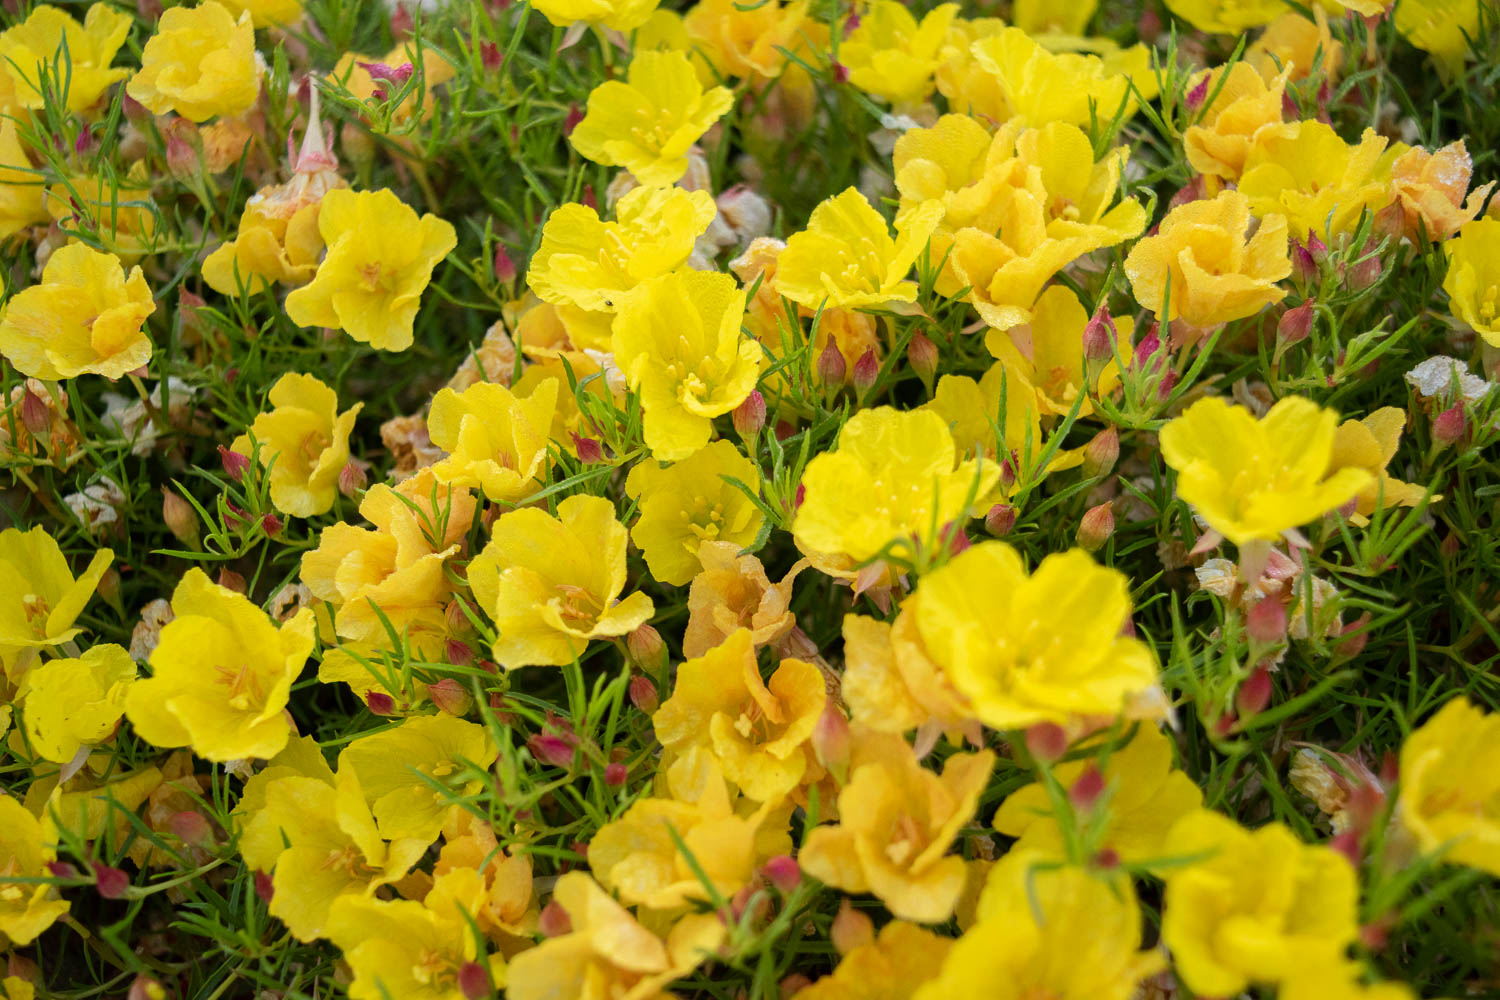 Sundrops - These little cuties are a nice little ground cover. They start out in early spring as red buds, then open into a blanket of bright yellow flowers. When first planted, the plant looked like a dead weed, but they've grown nicely and take up a lovely cover of the front yard. In the summertime they die back until spring.